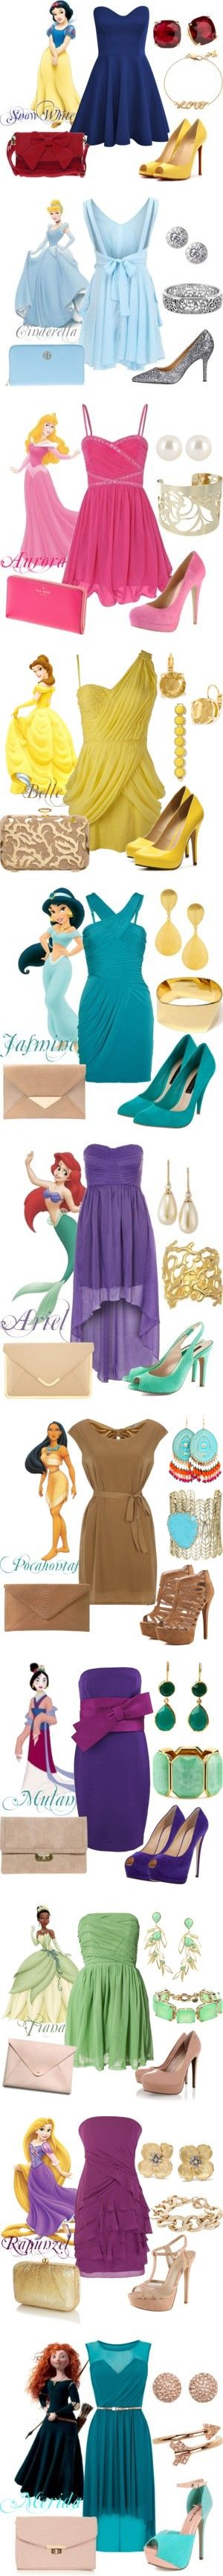 """Disney Princess Prom Outfits"" by natihasi on Polyvore"